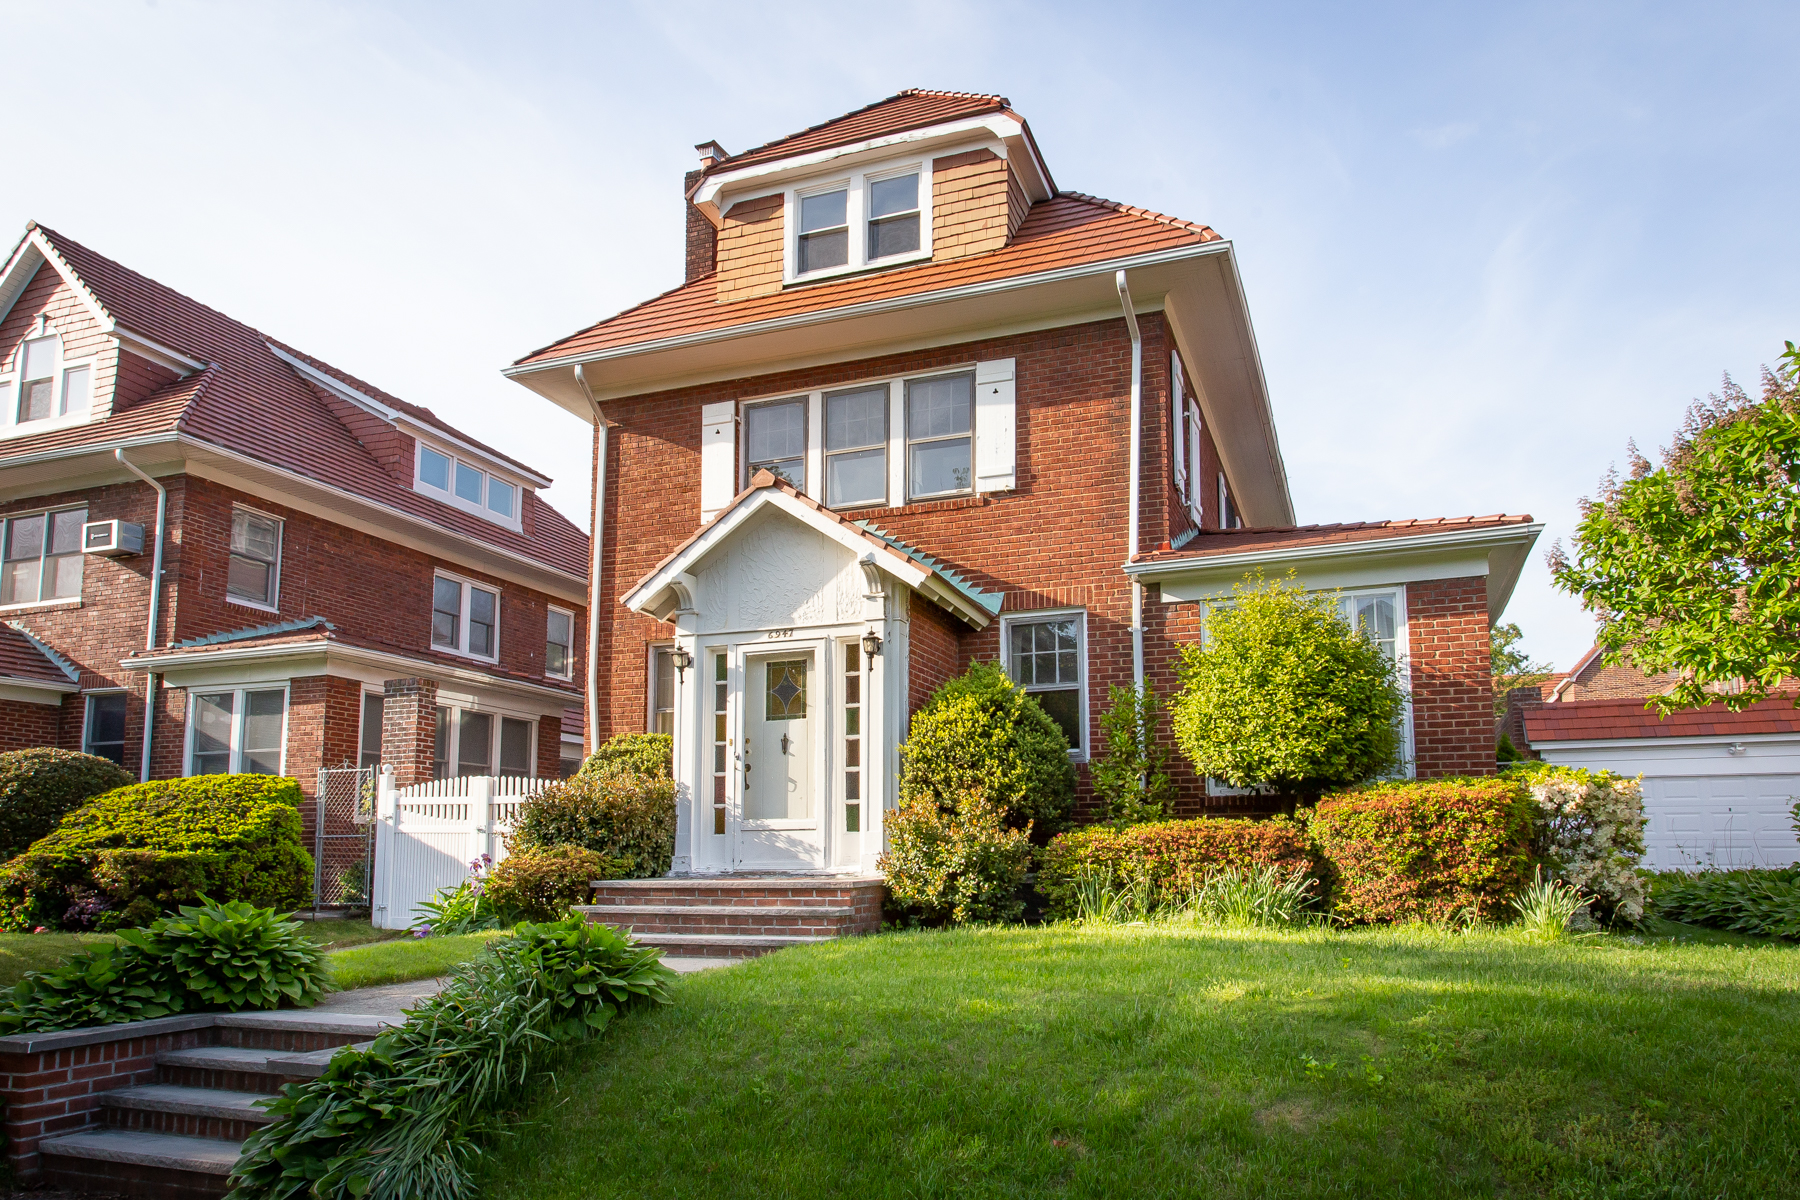 """Single Family Homes for Active at """"SPECTACULAR SUNLIT HOUSE"""" 69-47 Exeter Street, Forest Hills, Queens, New York 11375 United States"""